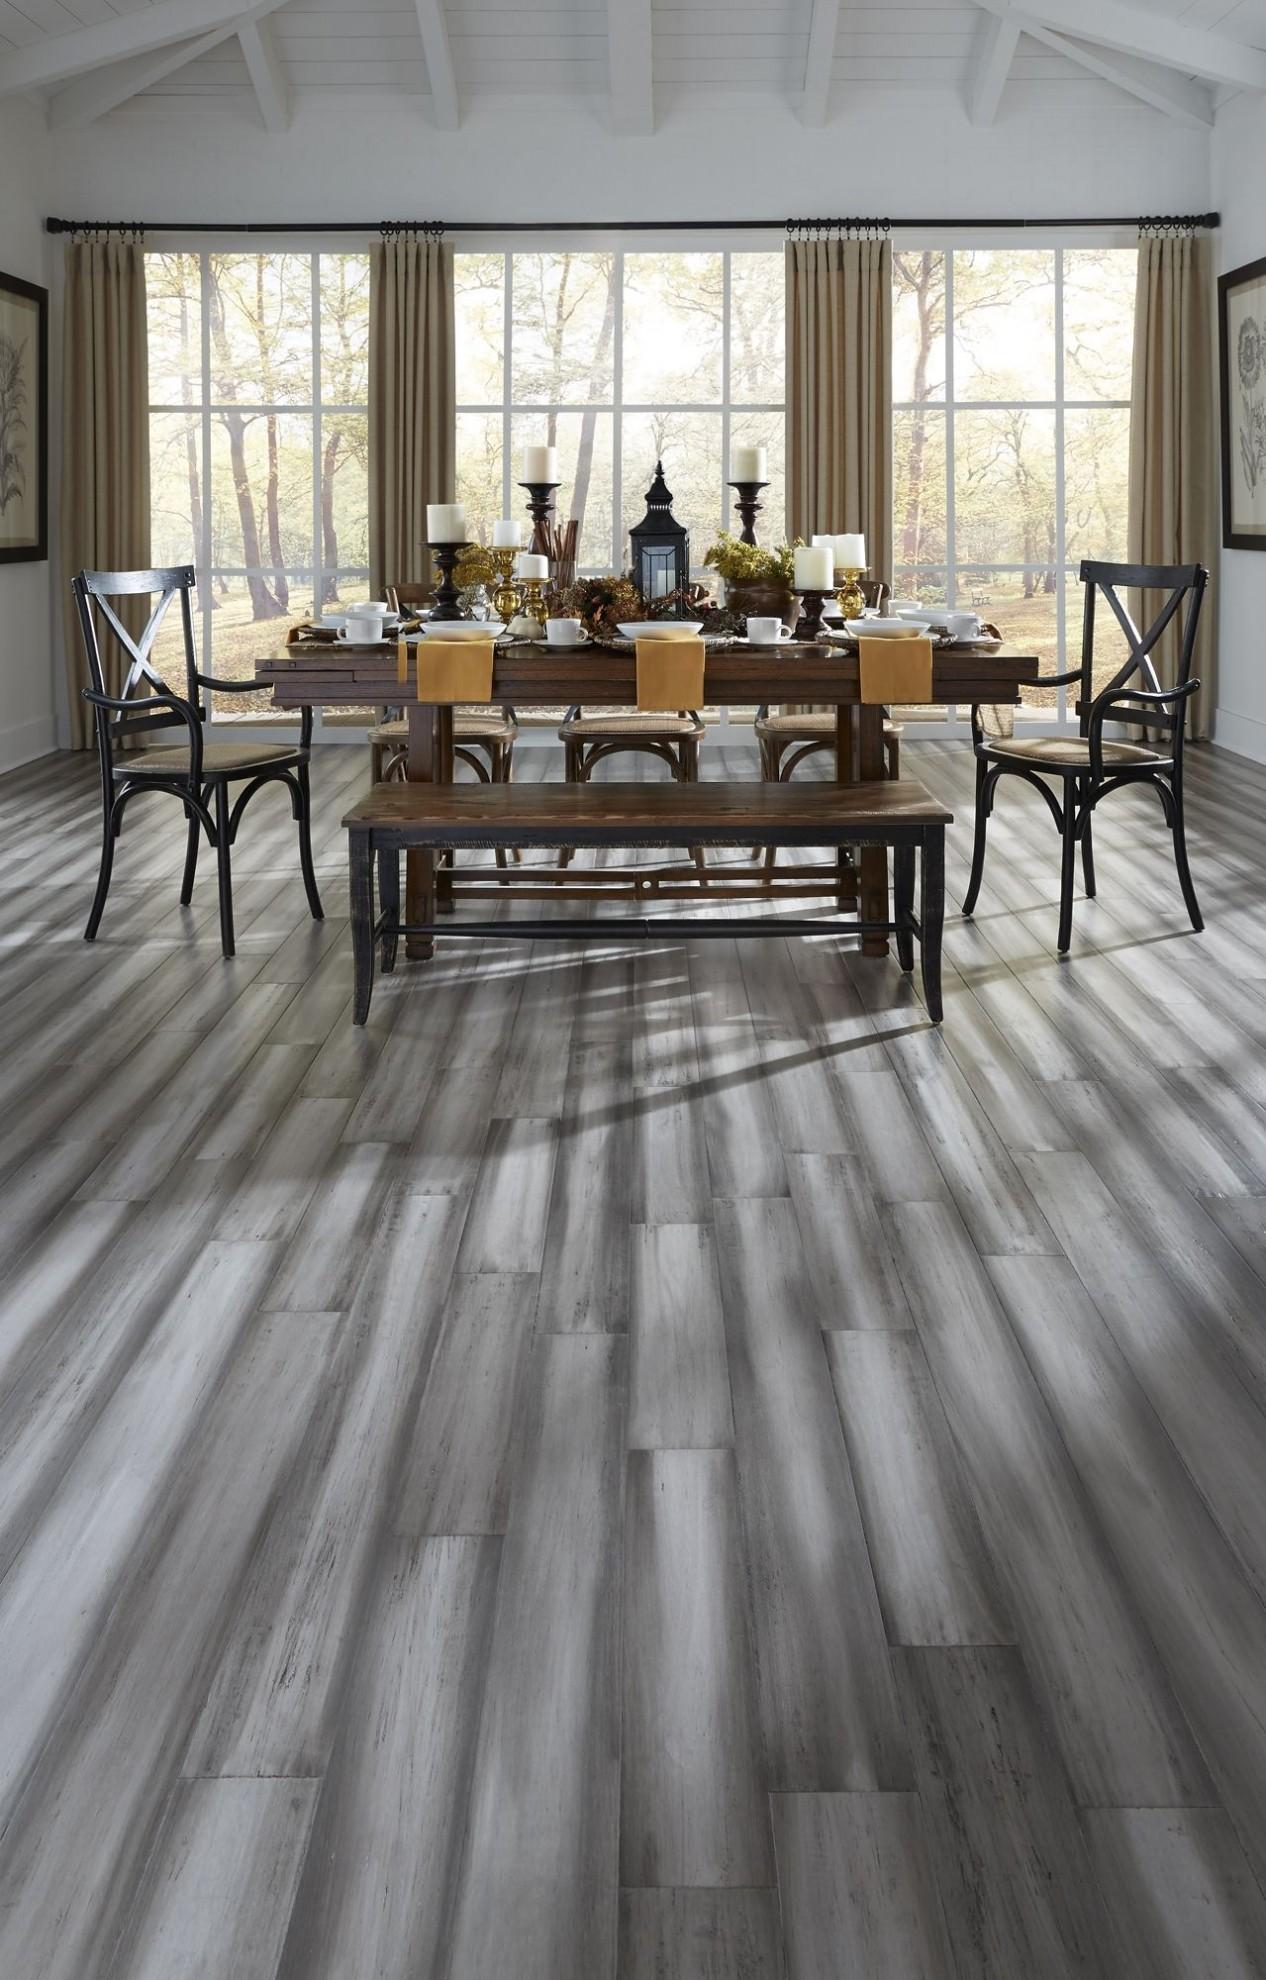 Modern Design and Rustic Texture the Blend Light and Dark Gray o Poner Tarima